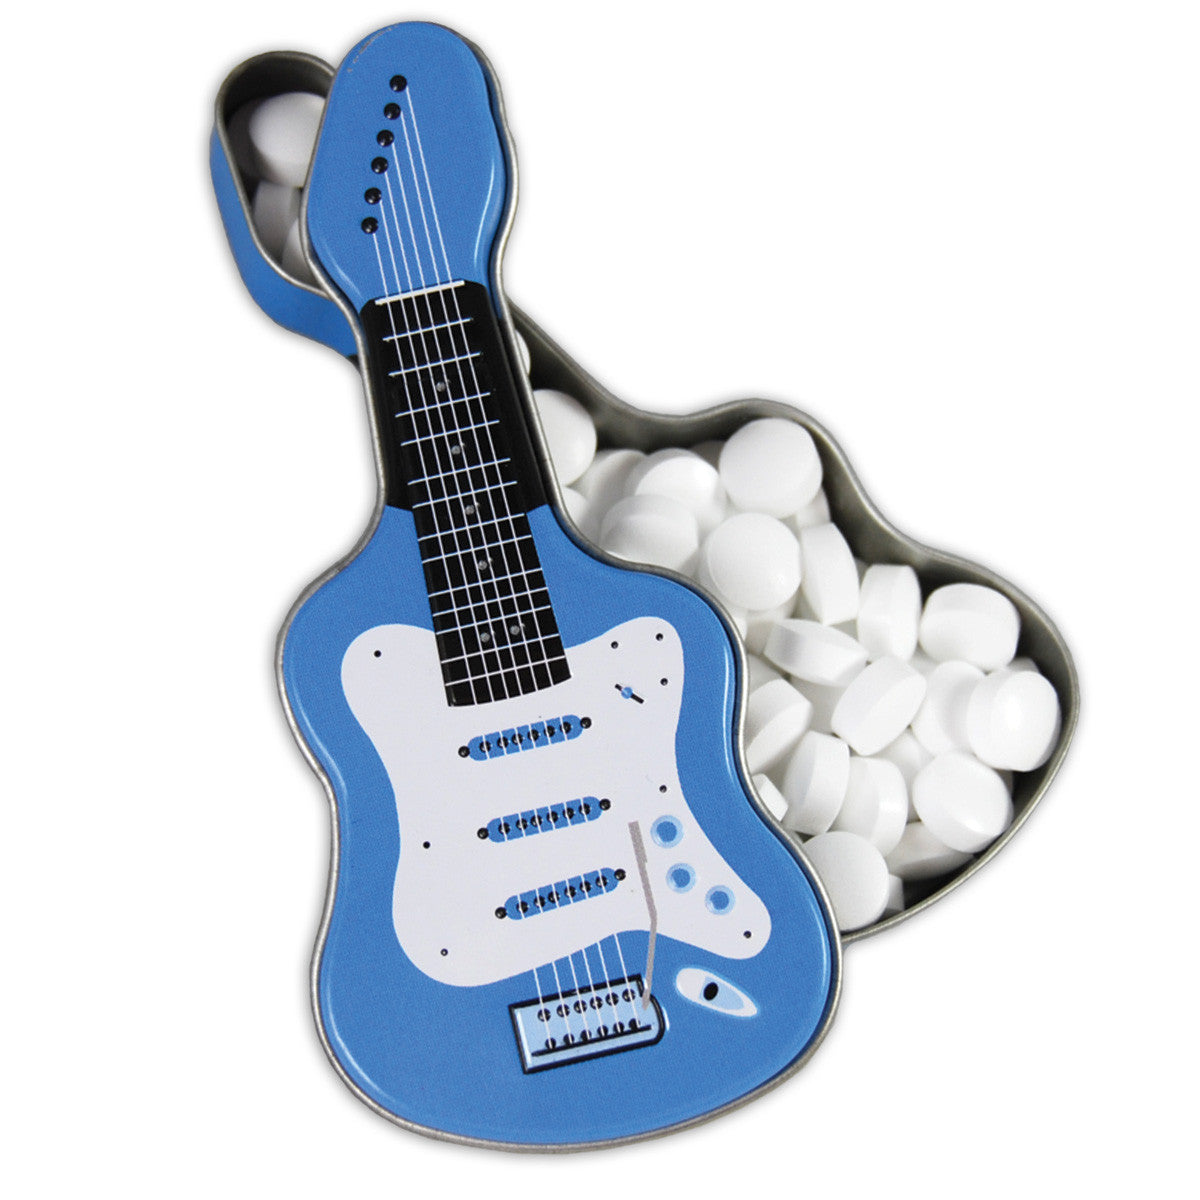 Blue Electric Guitar Shaped Tin - MTR4041F